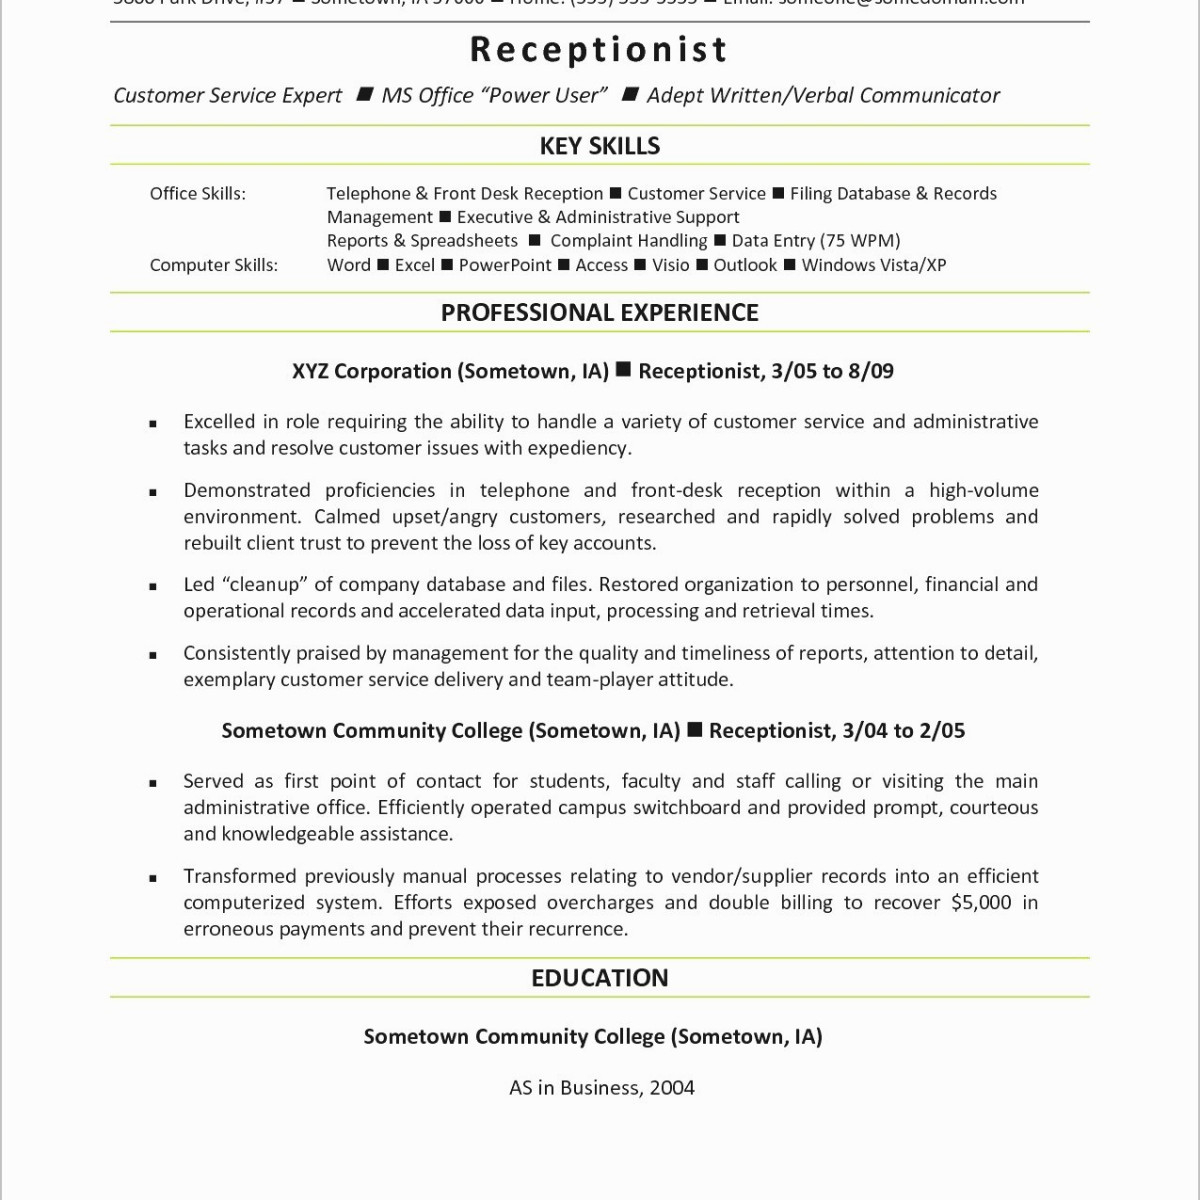 My Perfect Resume Phone Number - My Perfect Resume Customer Service Awesome Career Focus Resume New